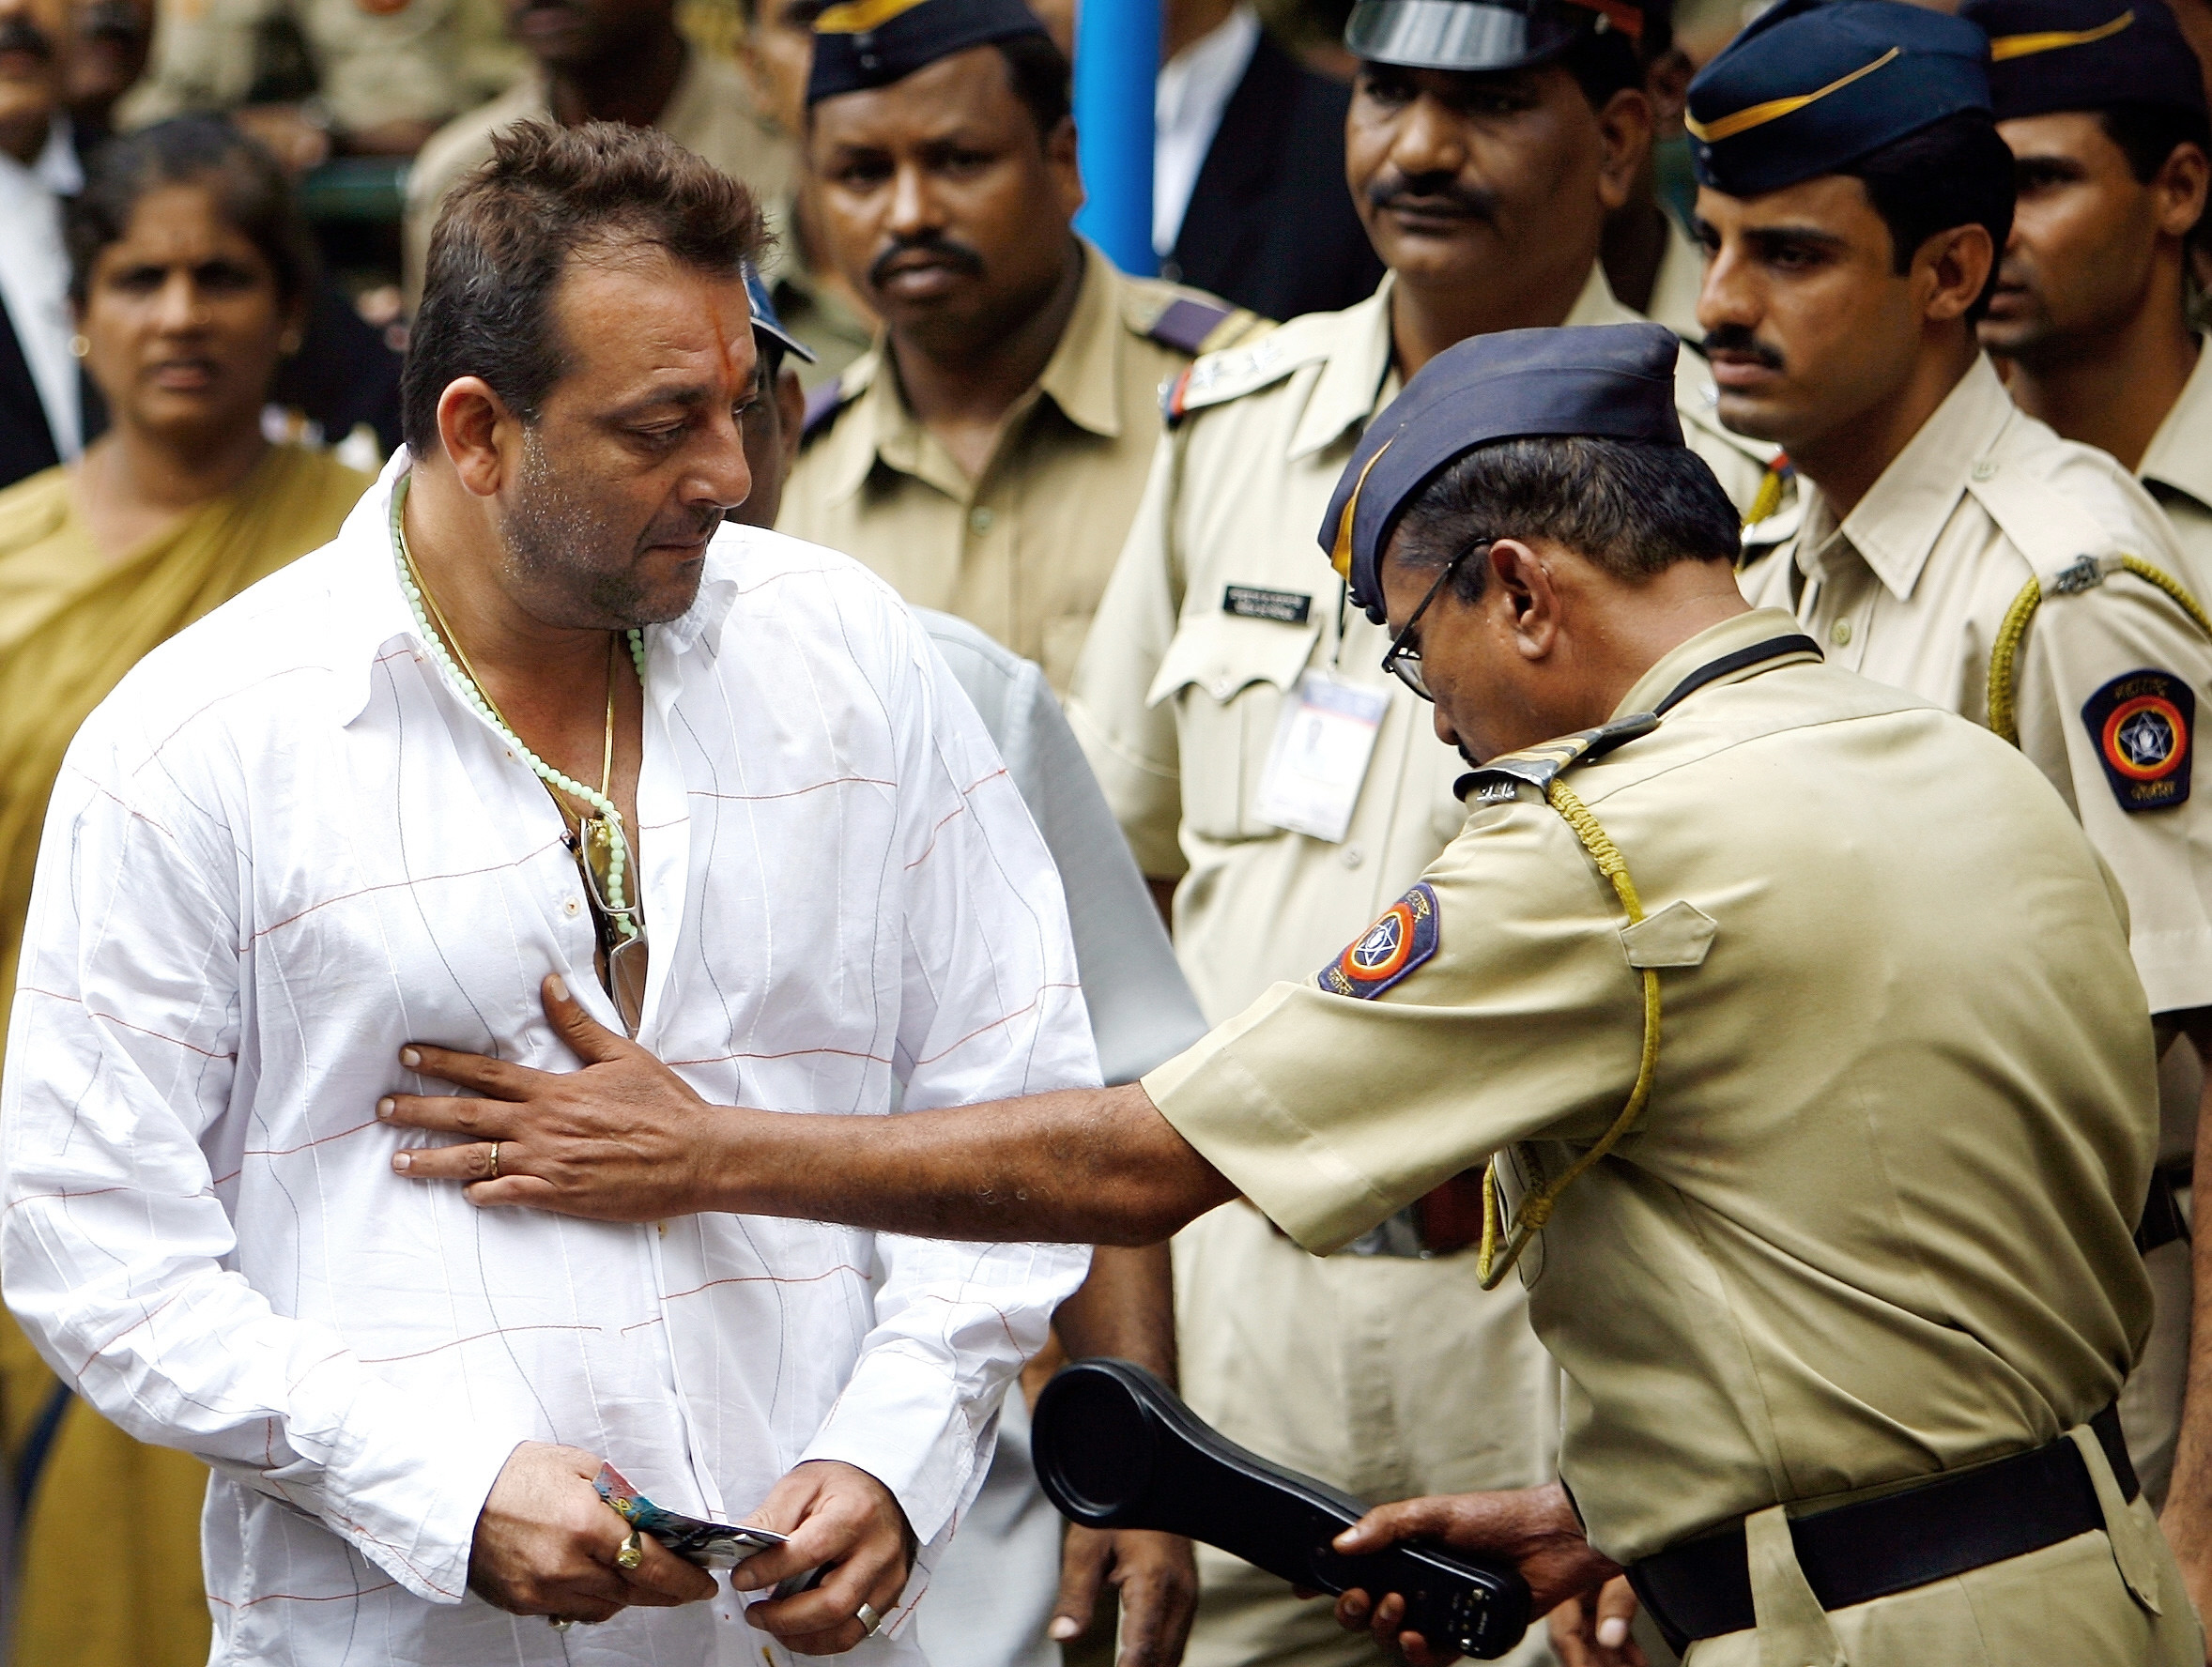 Sanjay Dutt : The 'Khalnayak' will be soon a free bird